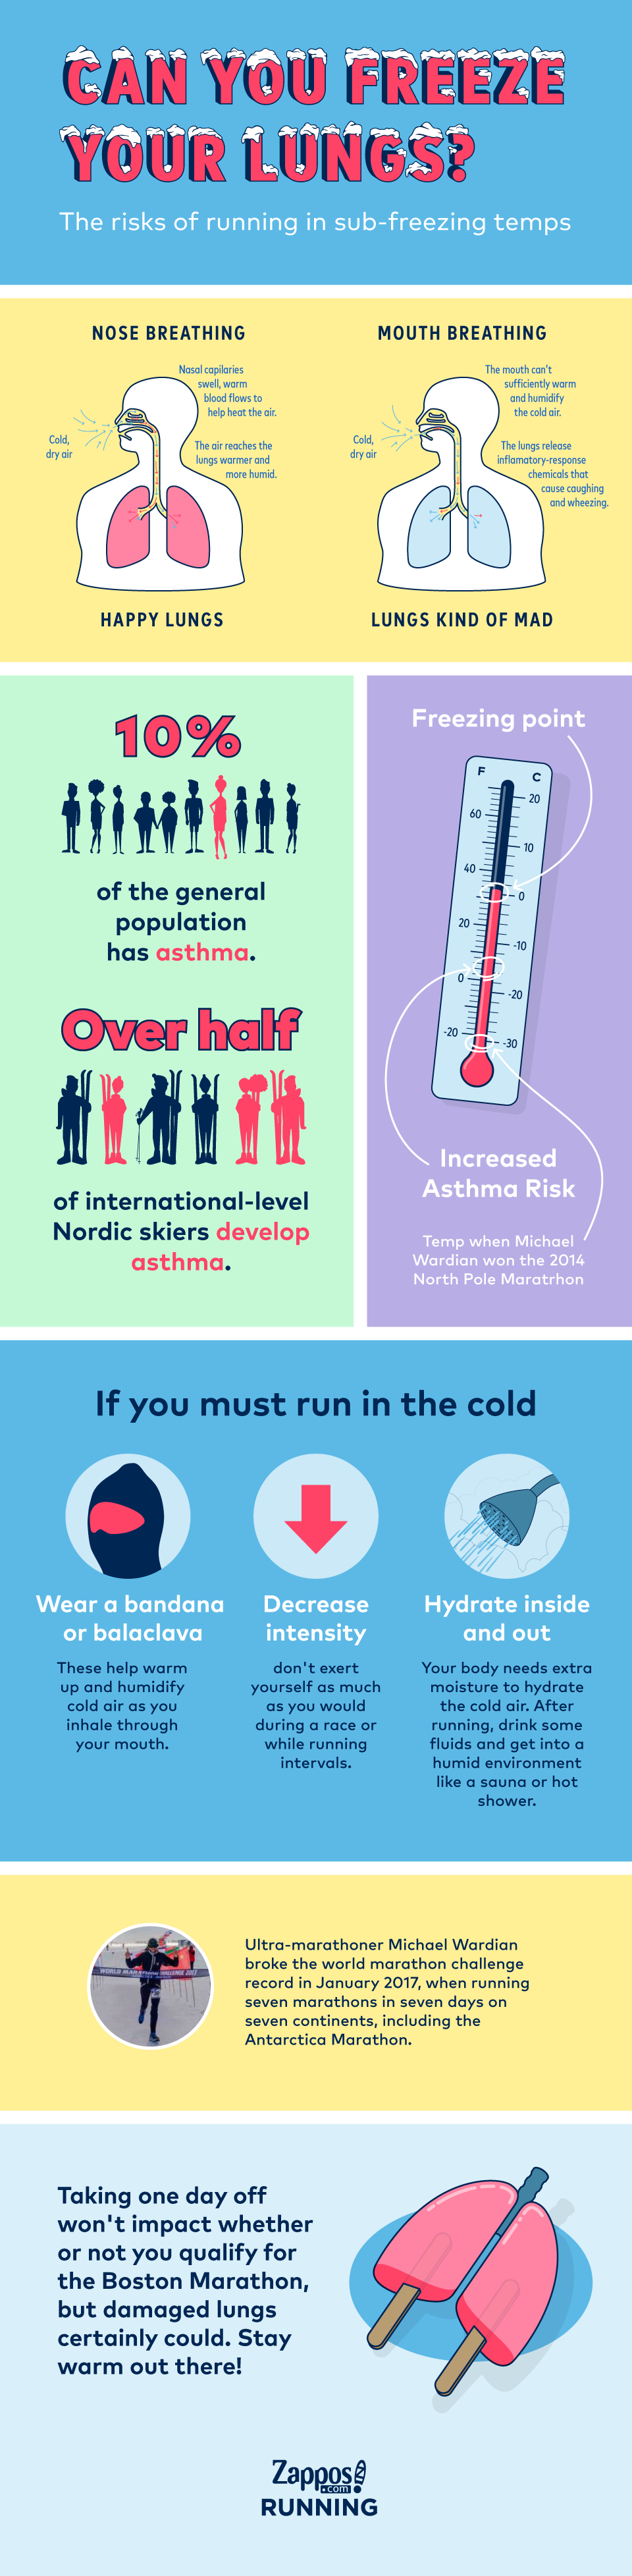 Can you Freeze your lungs?